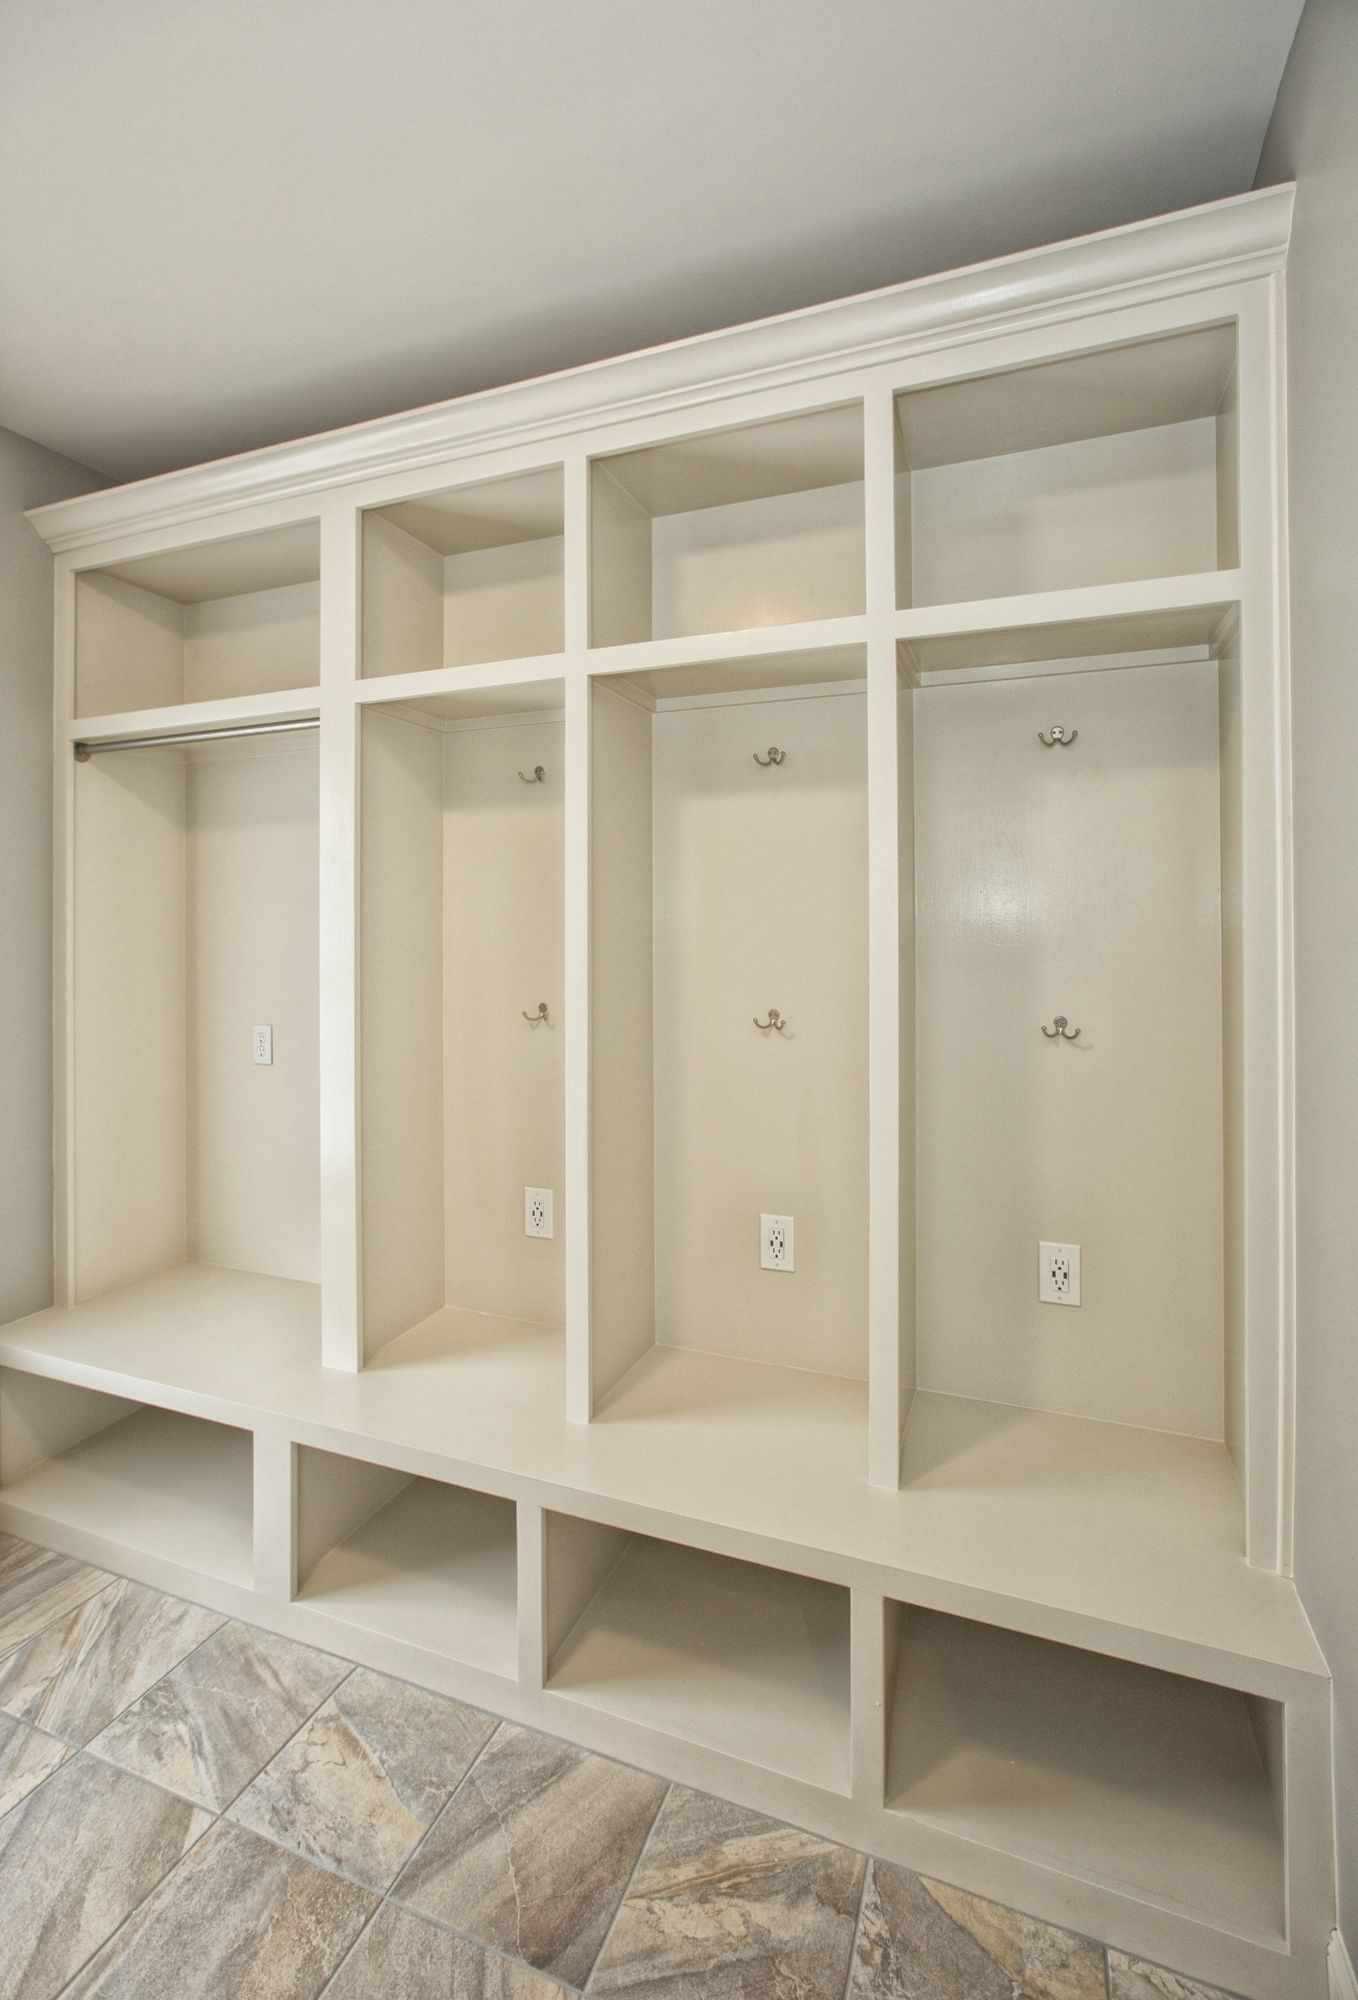 4 Cubby Mudlocker mudroom entranceway bench. Built in Mud locker ...